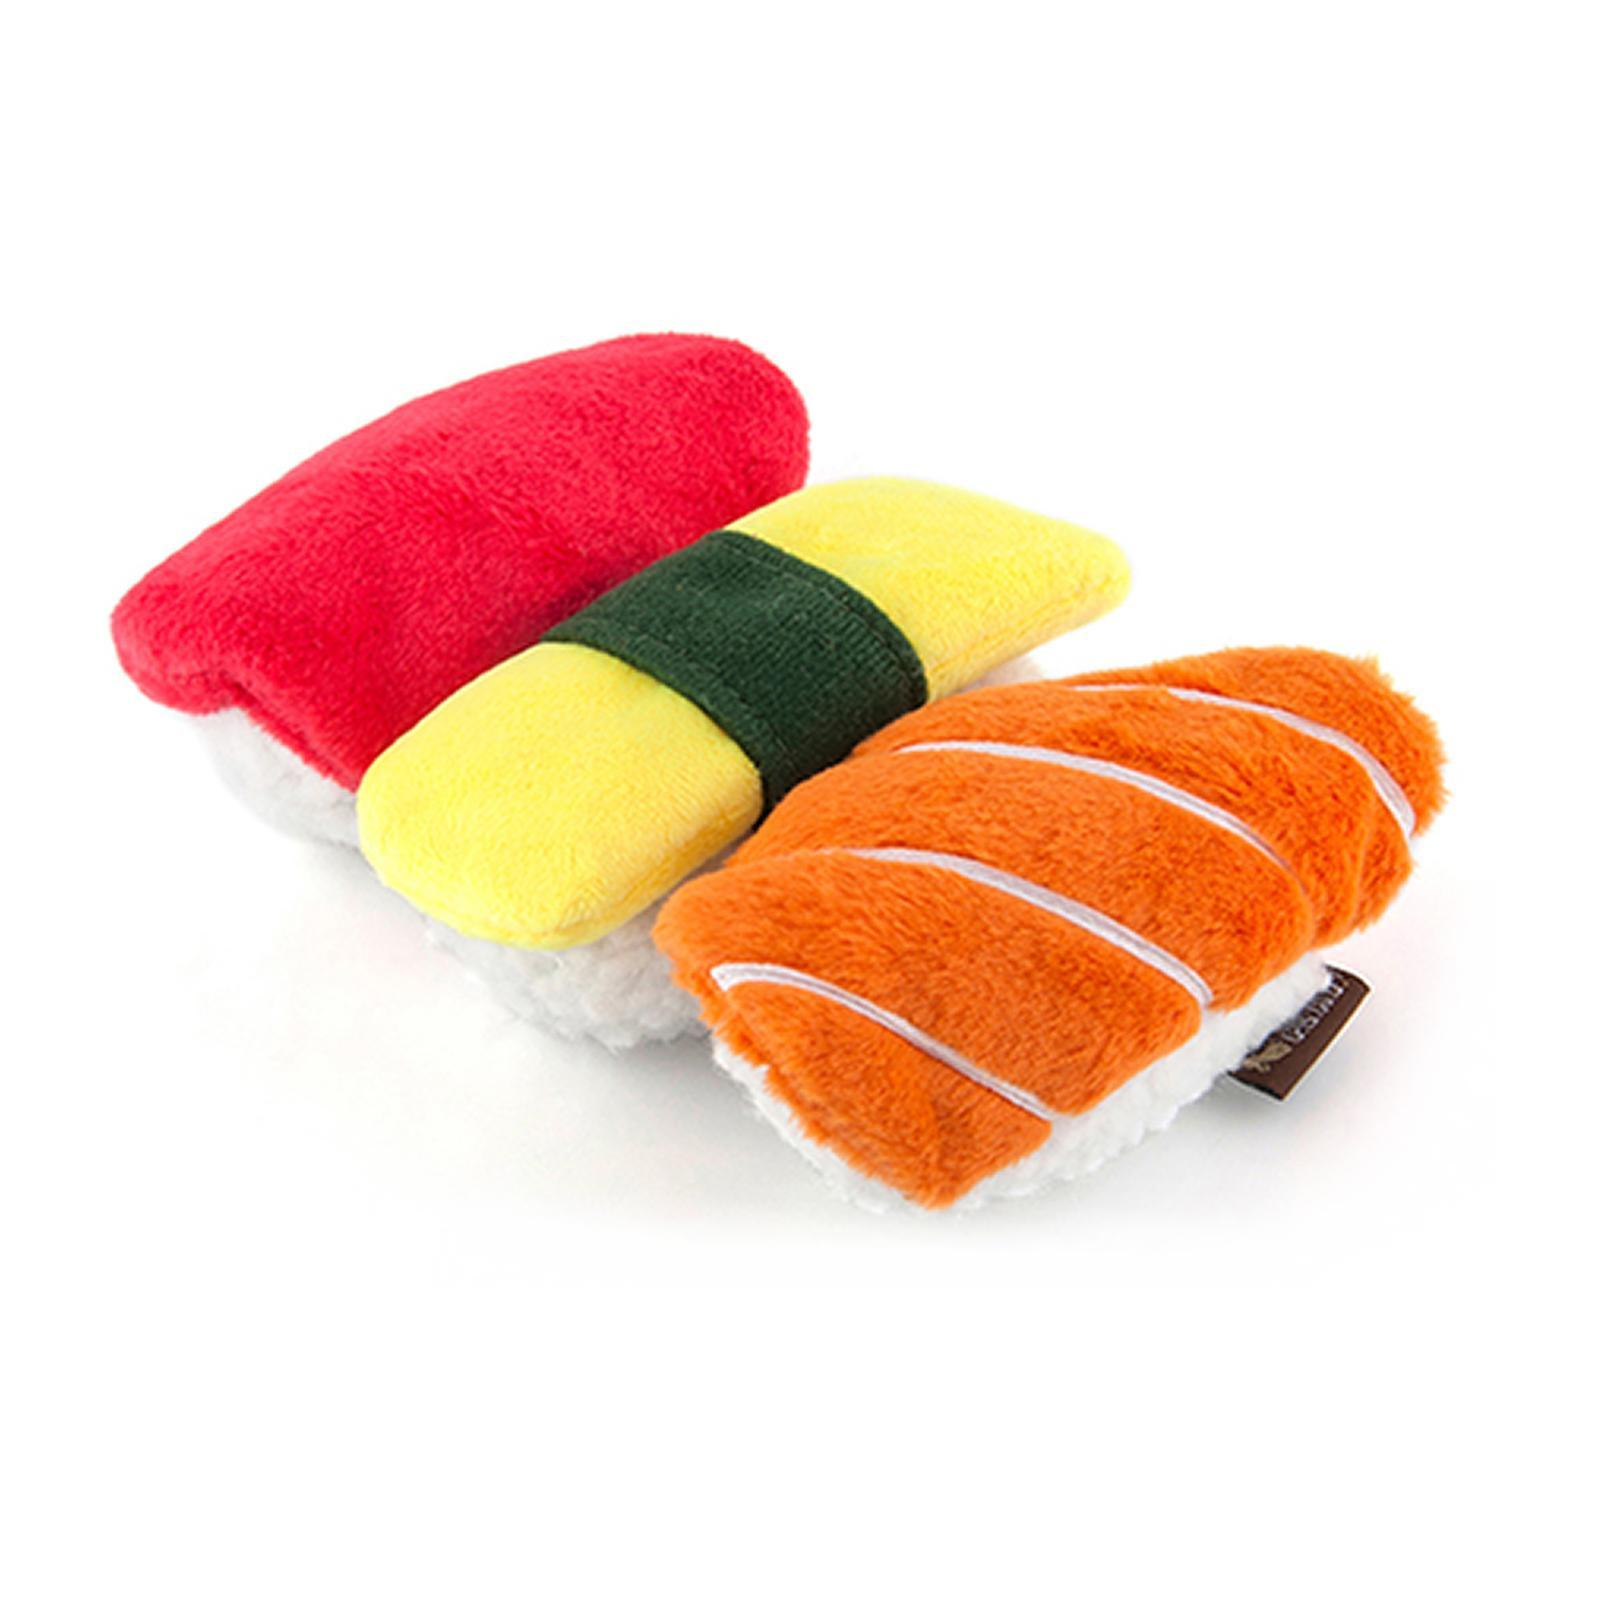 Ginger and Bear Dog Toy - The International Classic : Sushi